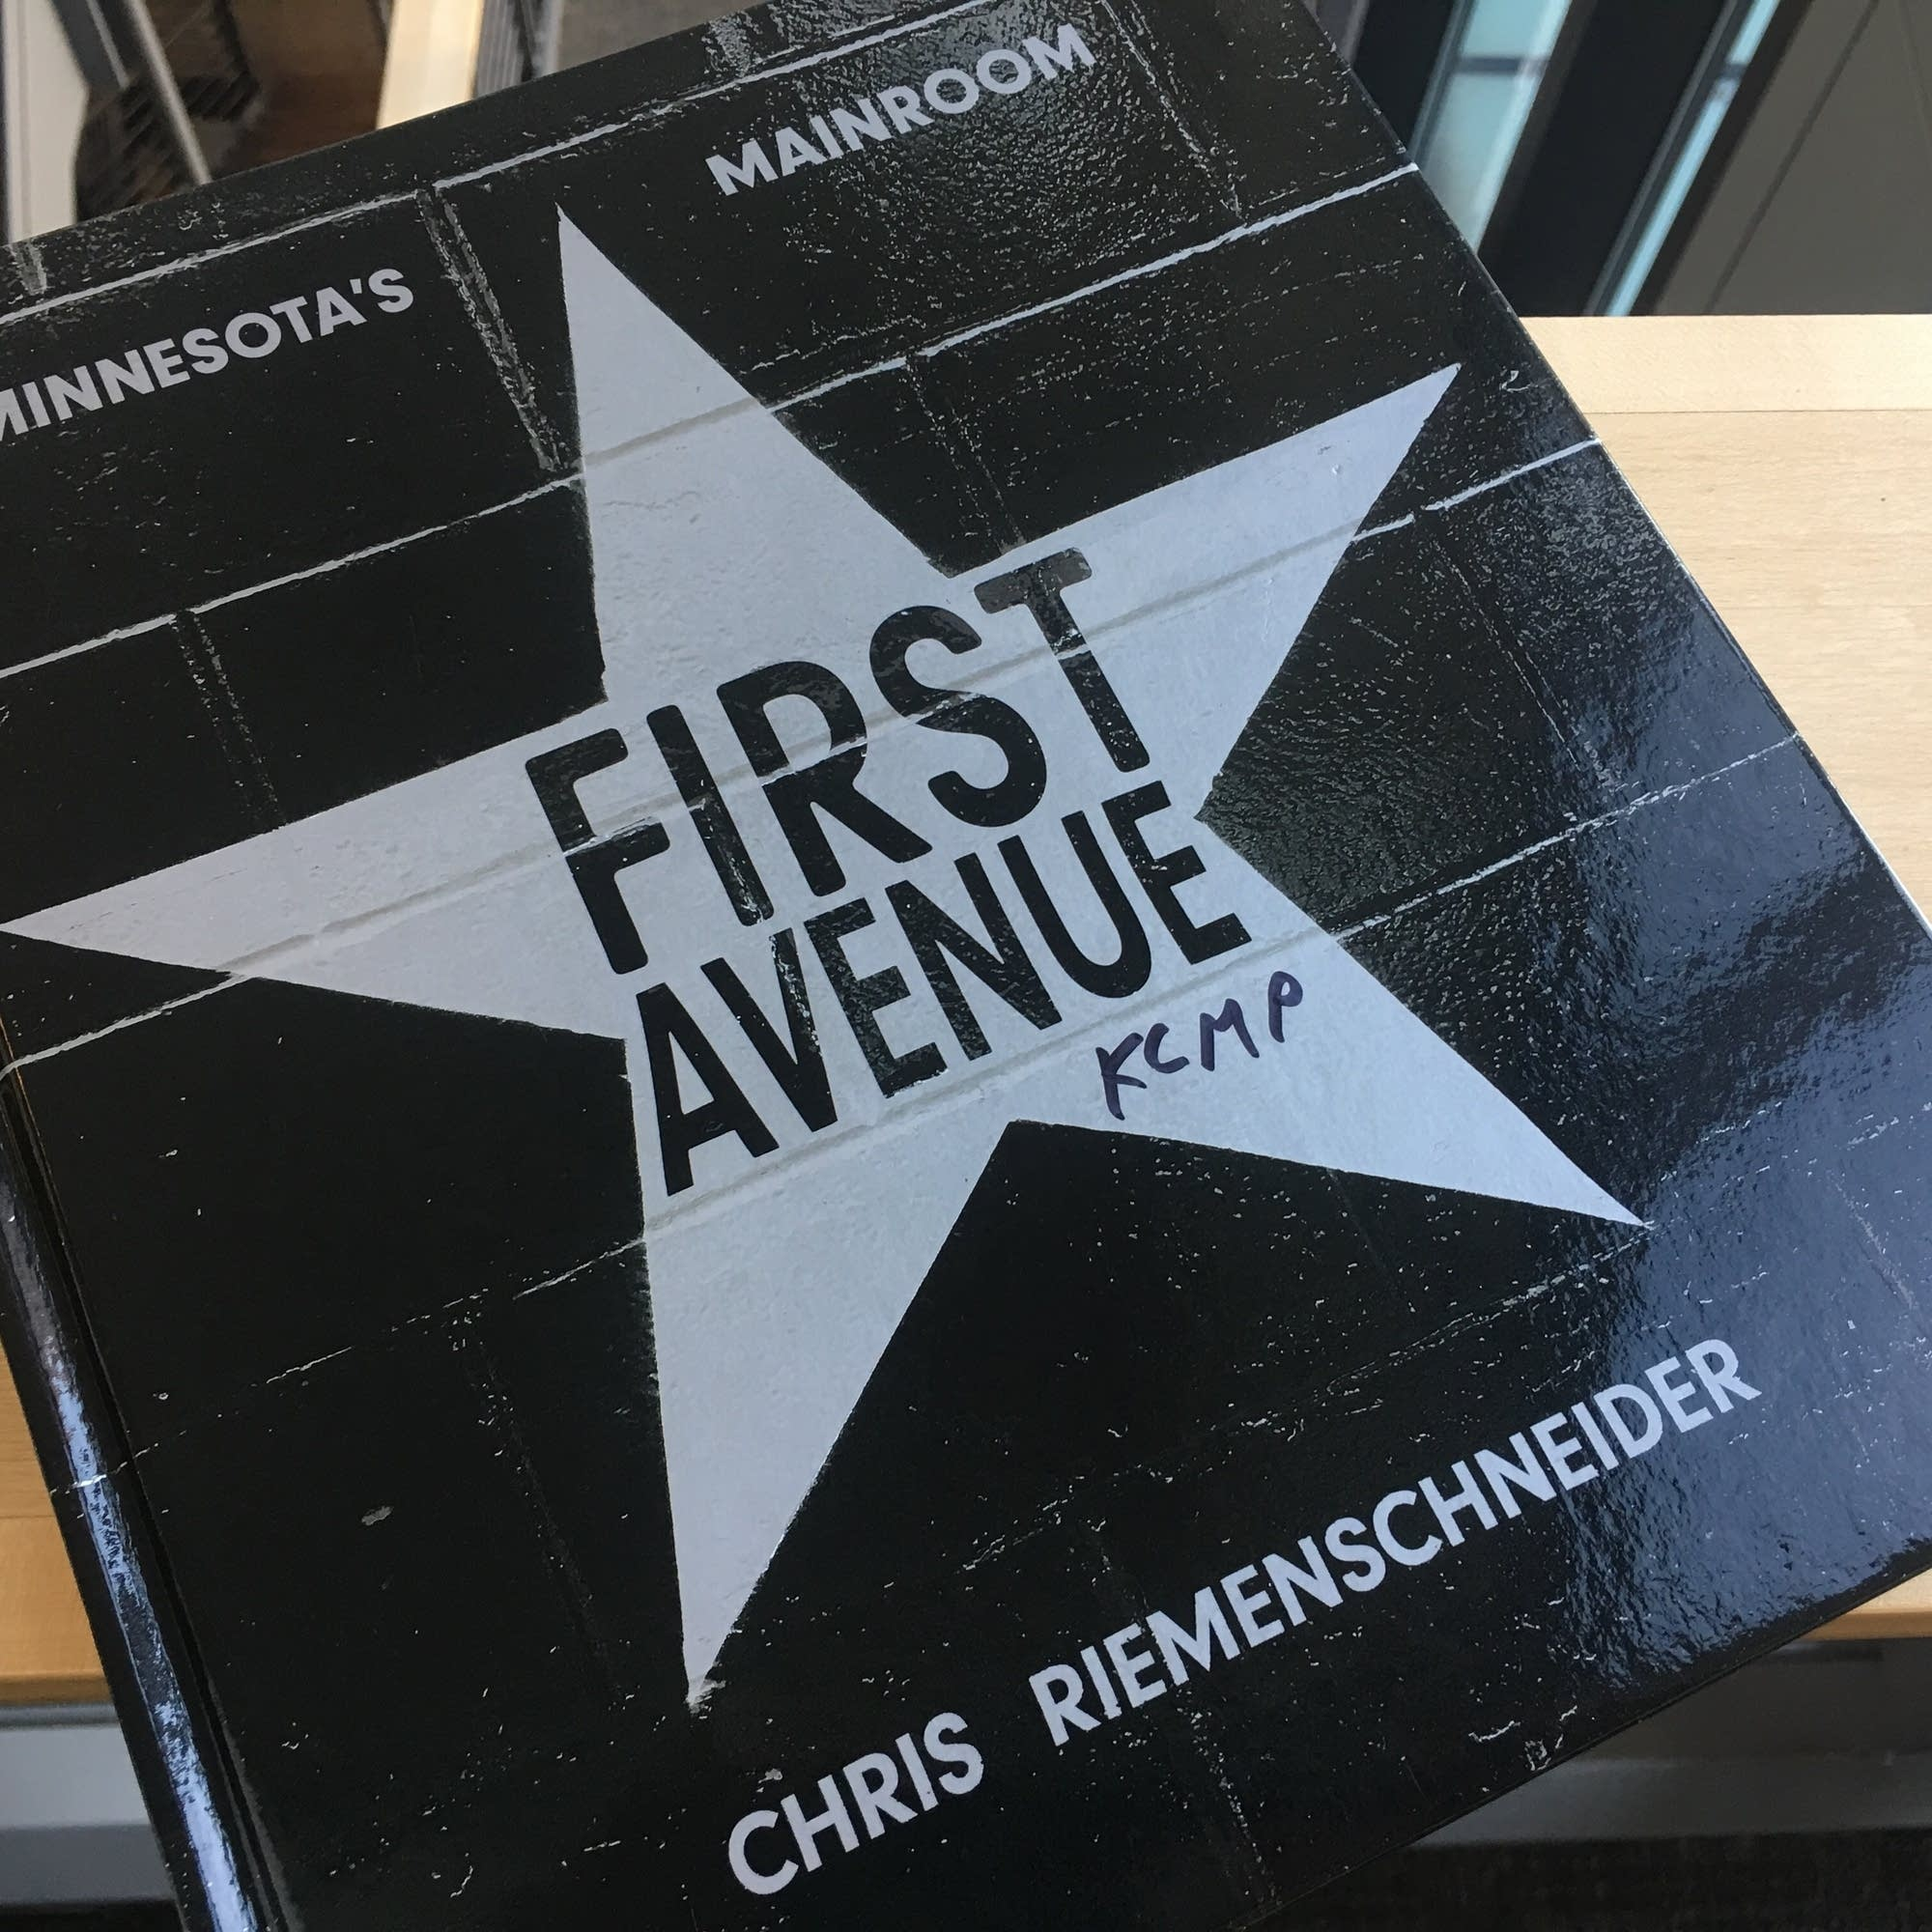 'First Avenue: Minnesota's Mainroom.'